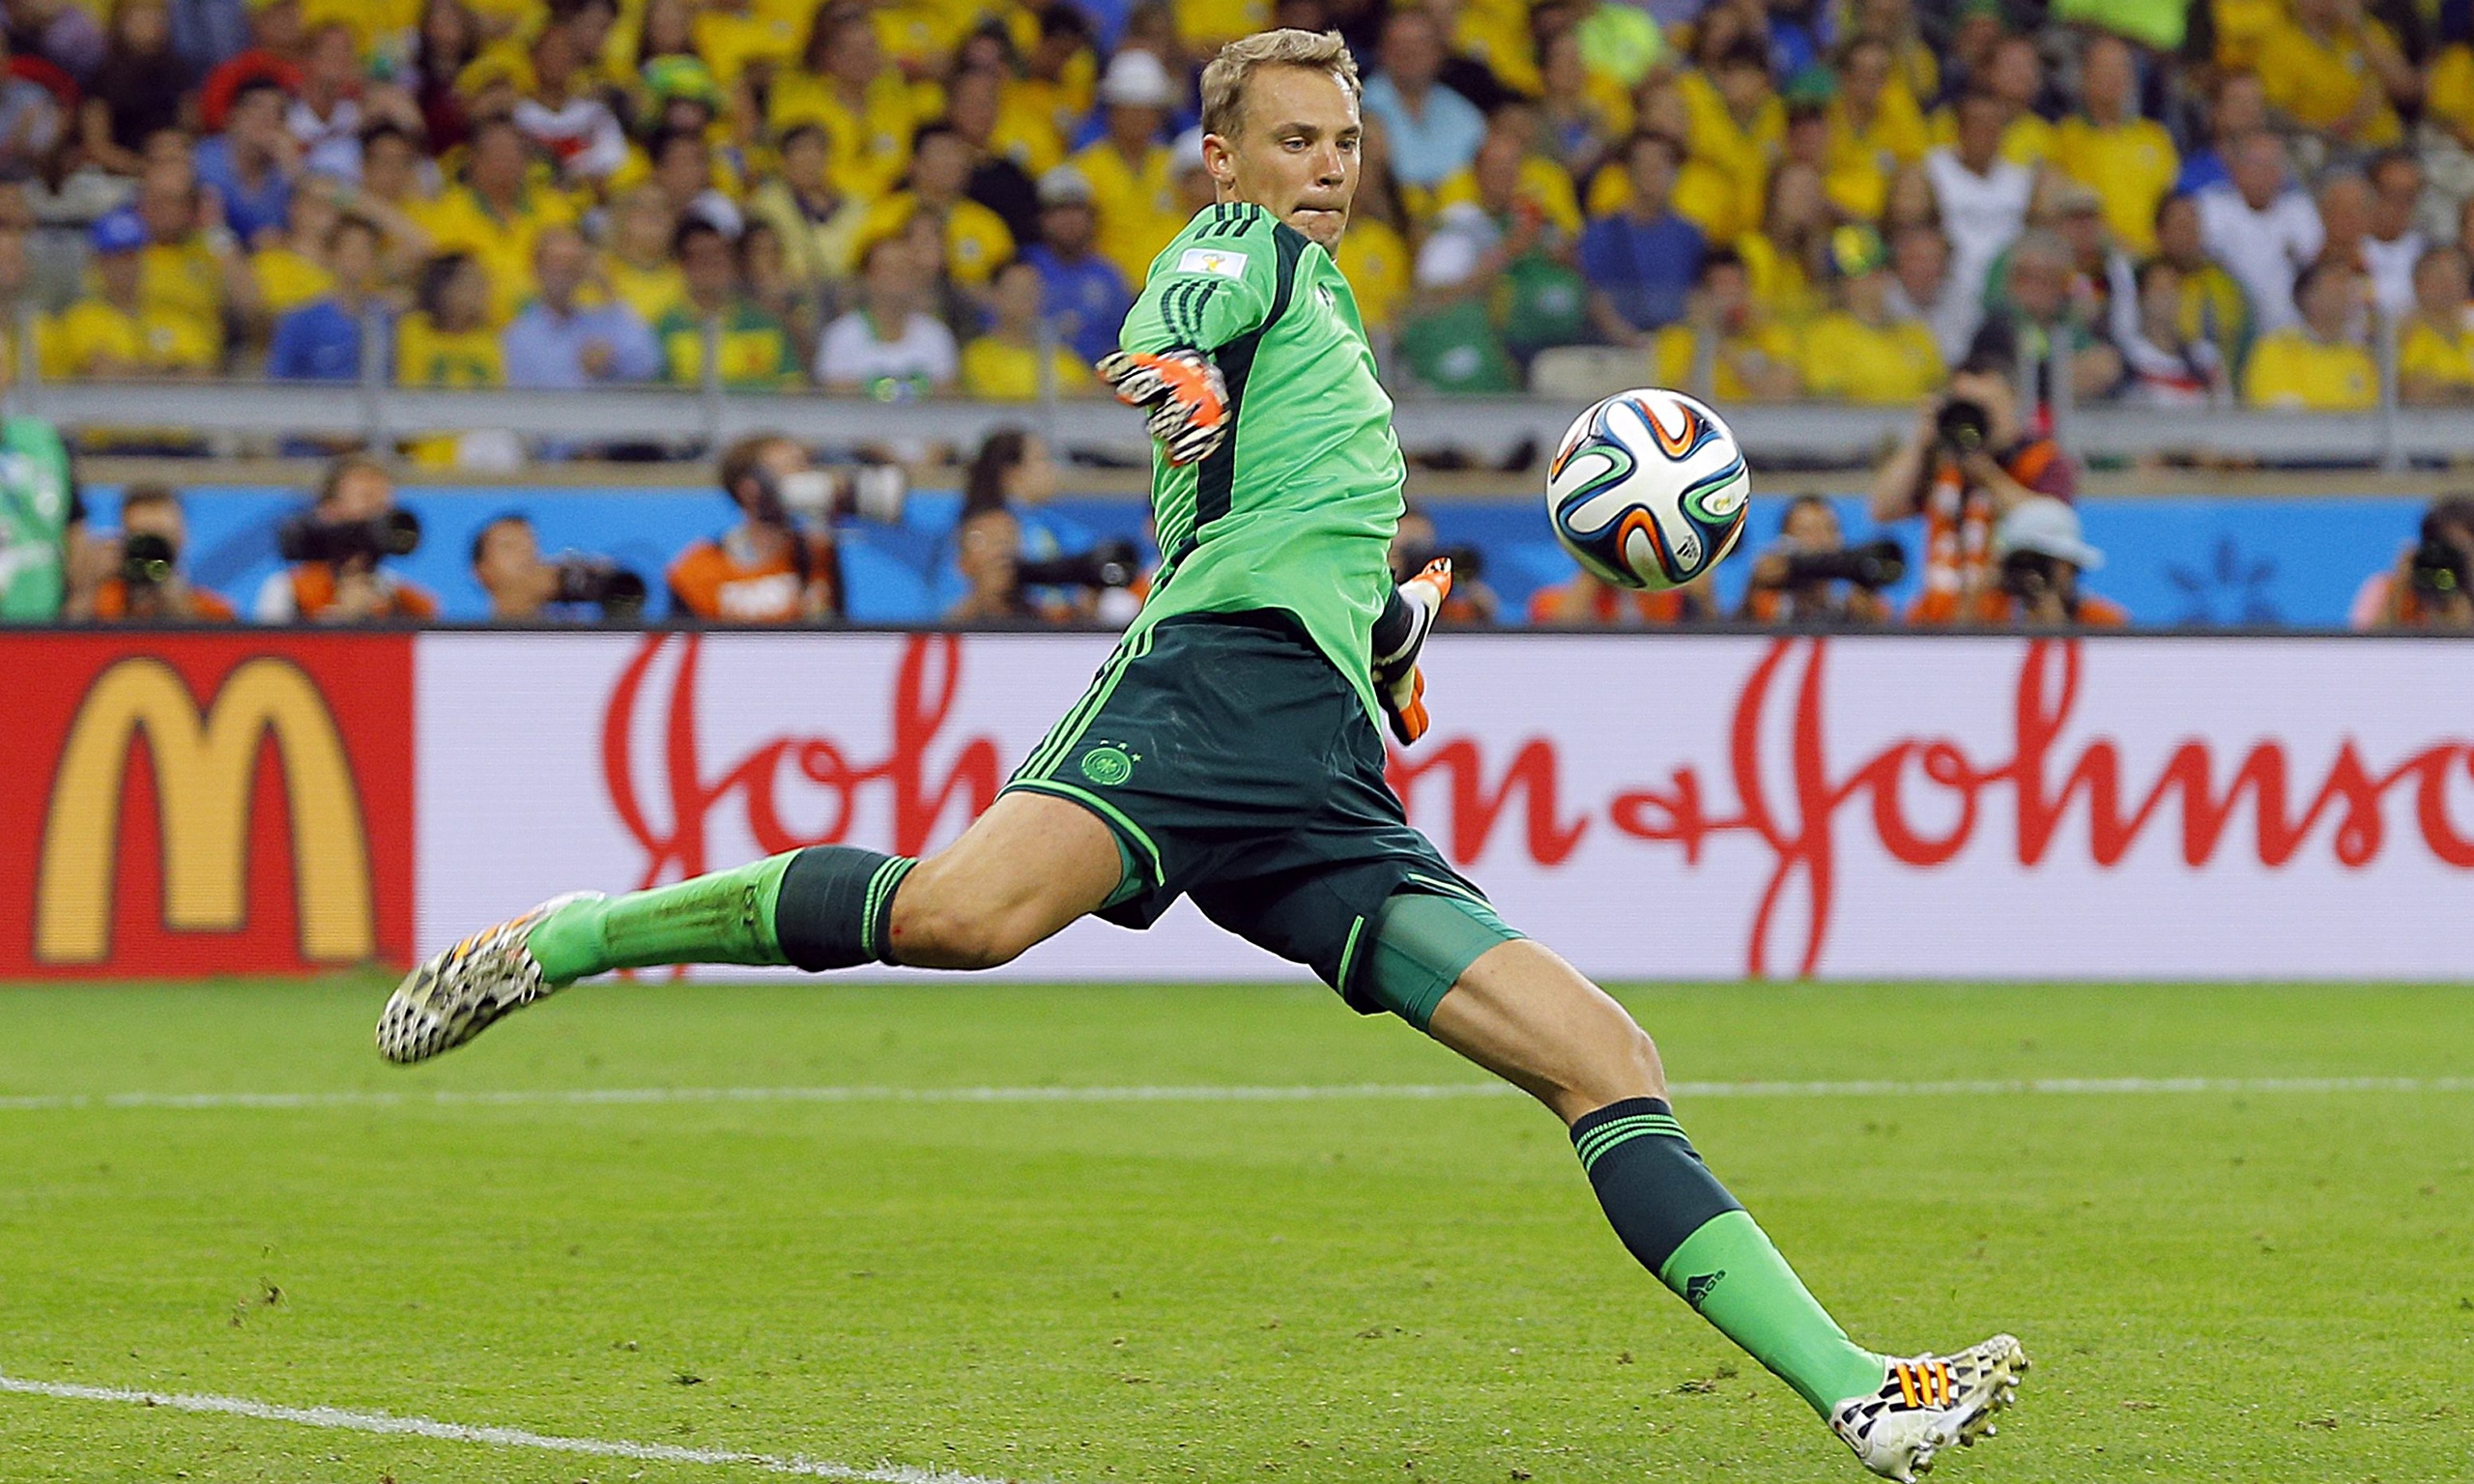 Manuel Neuer Kick Ball Wallpapers HQ